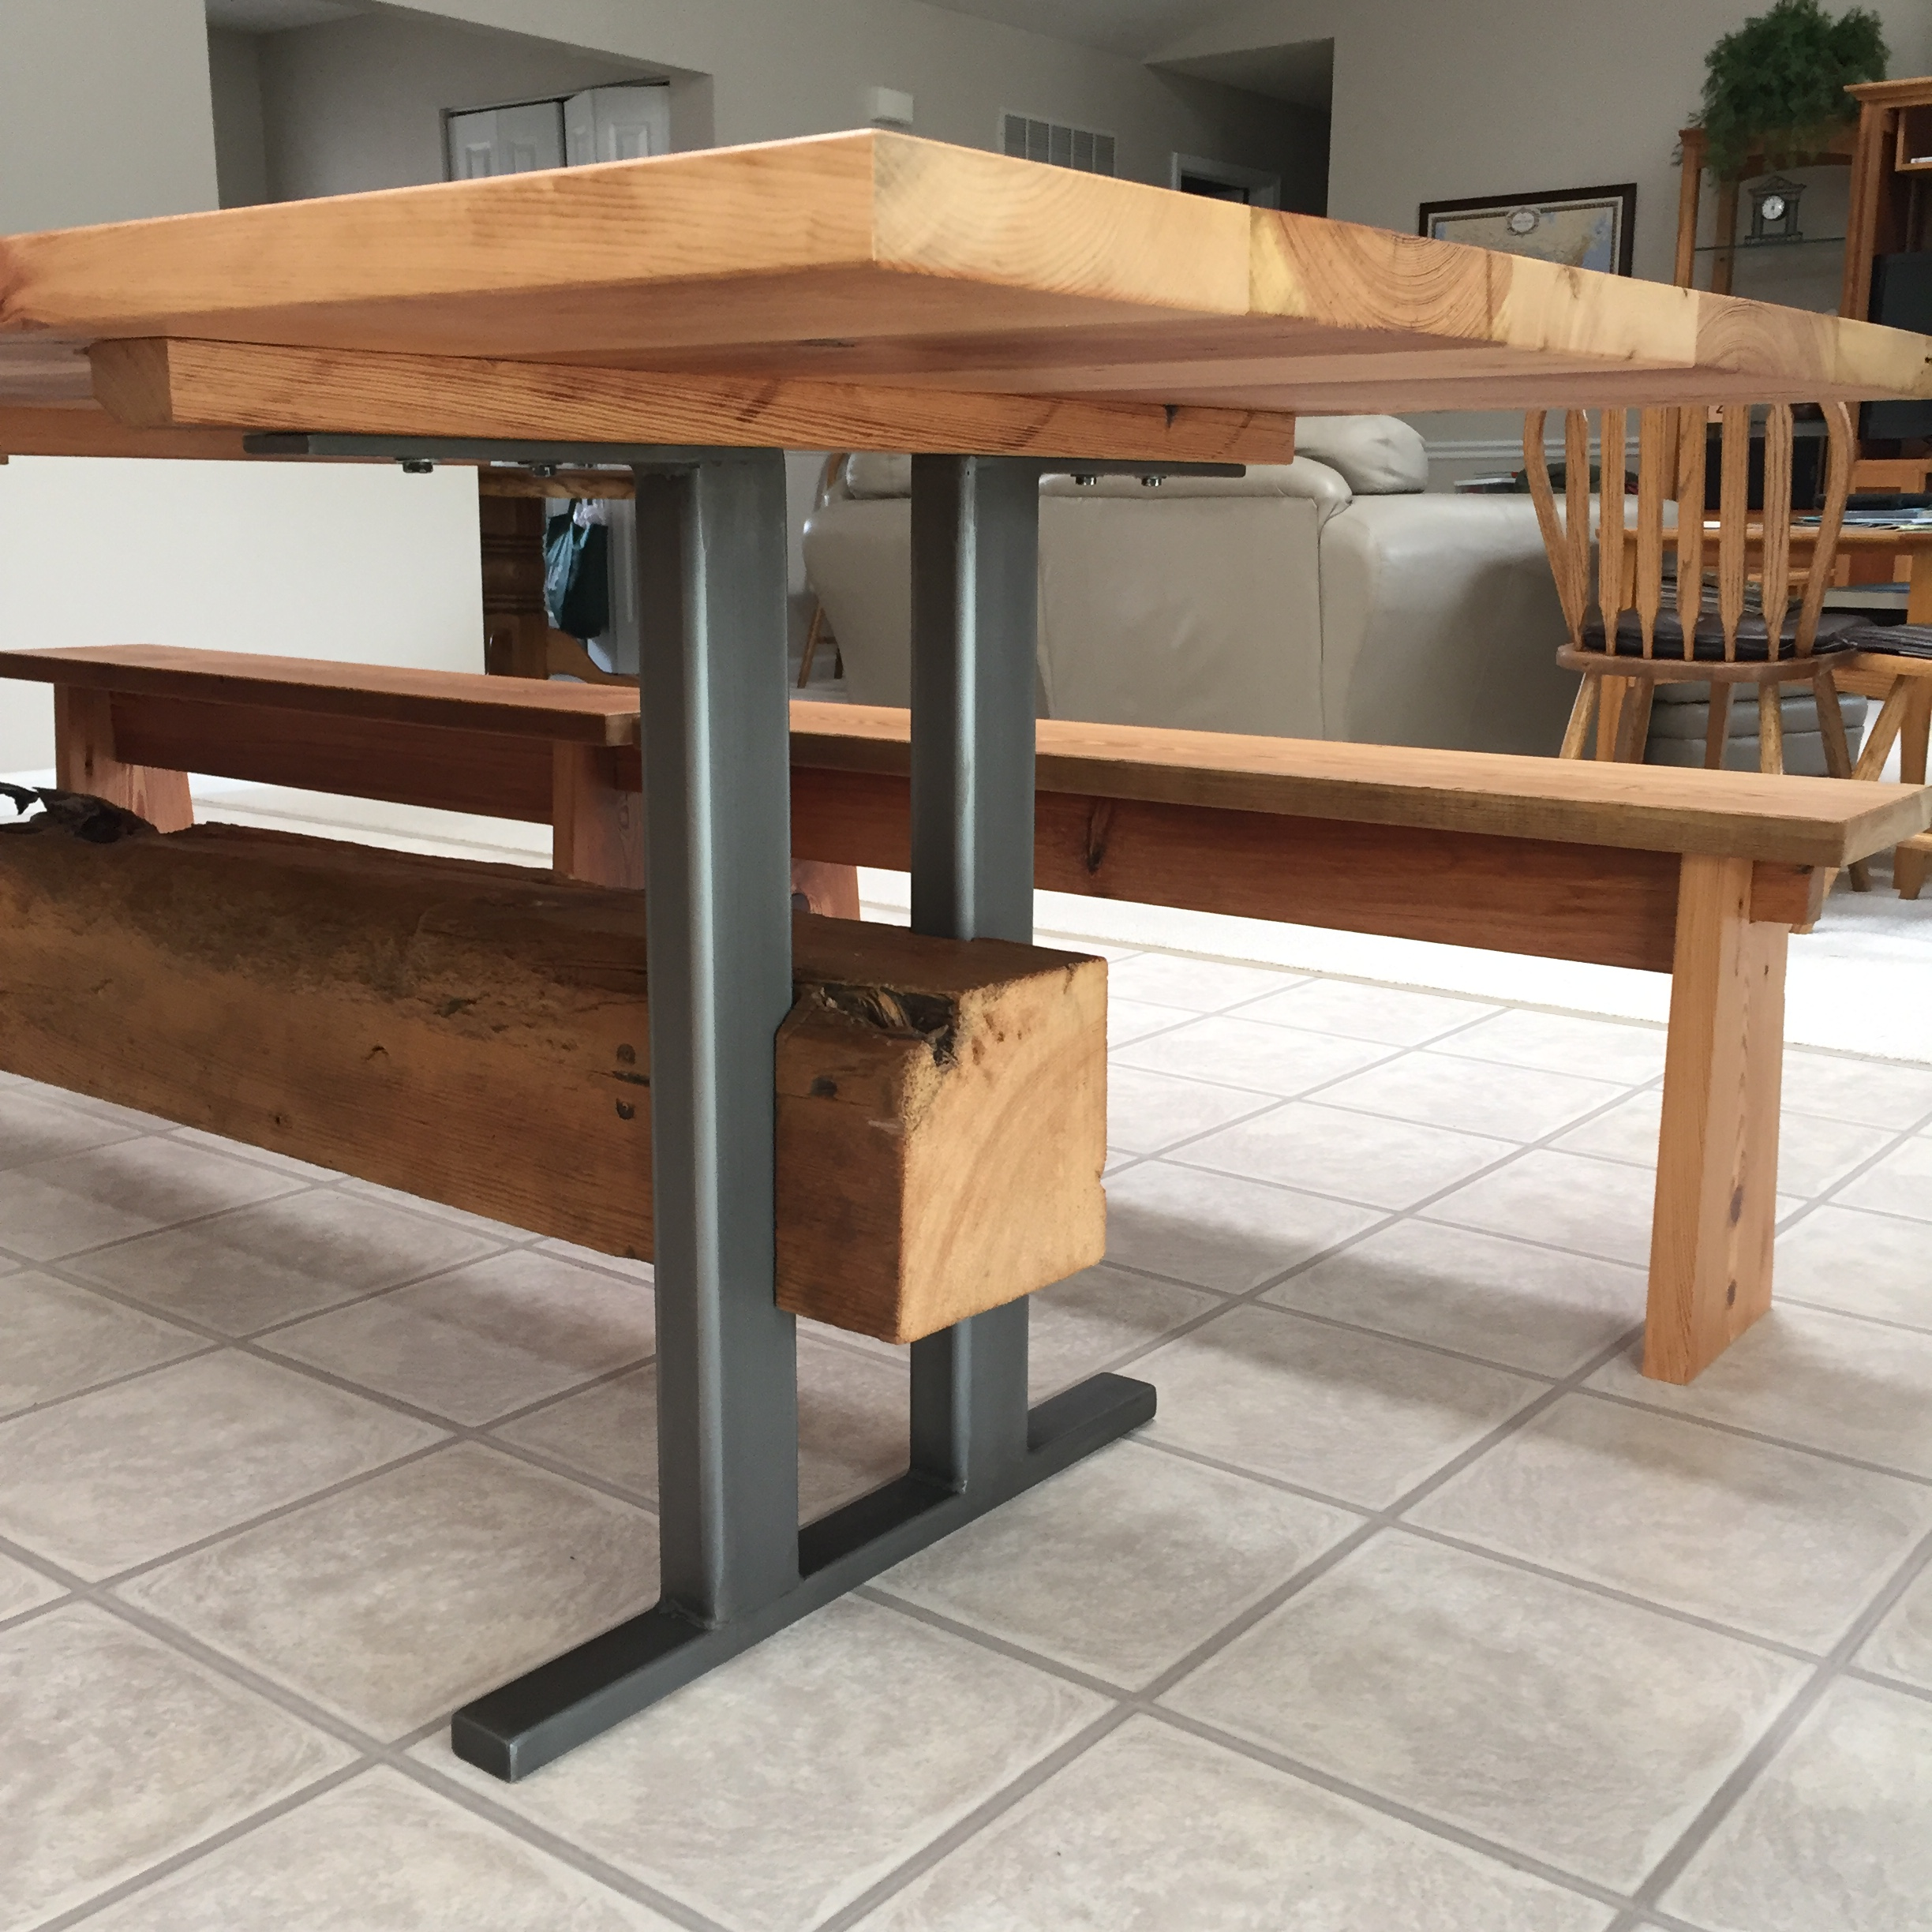 Beam Farm Table & Benches